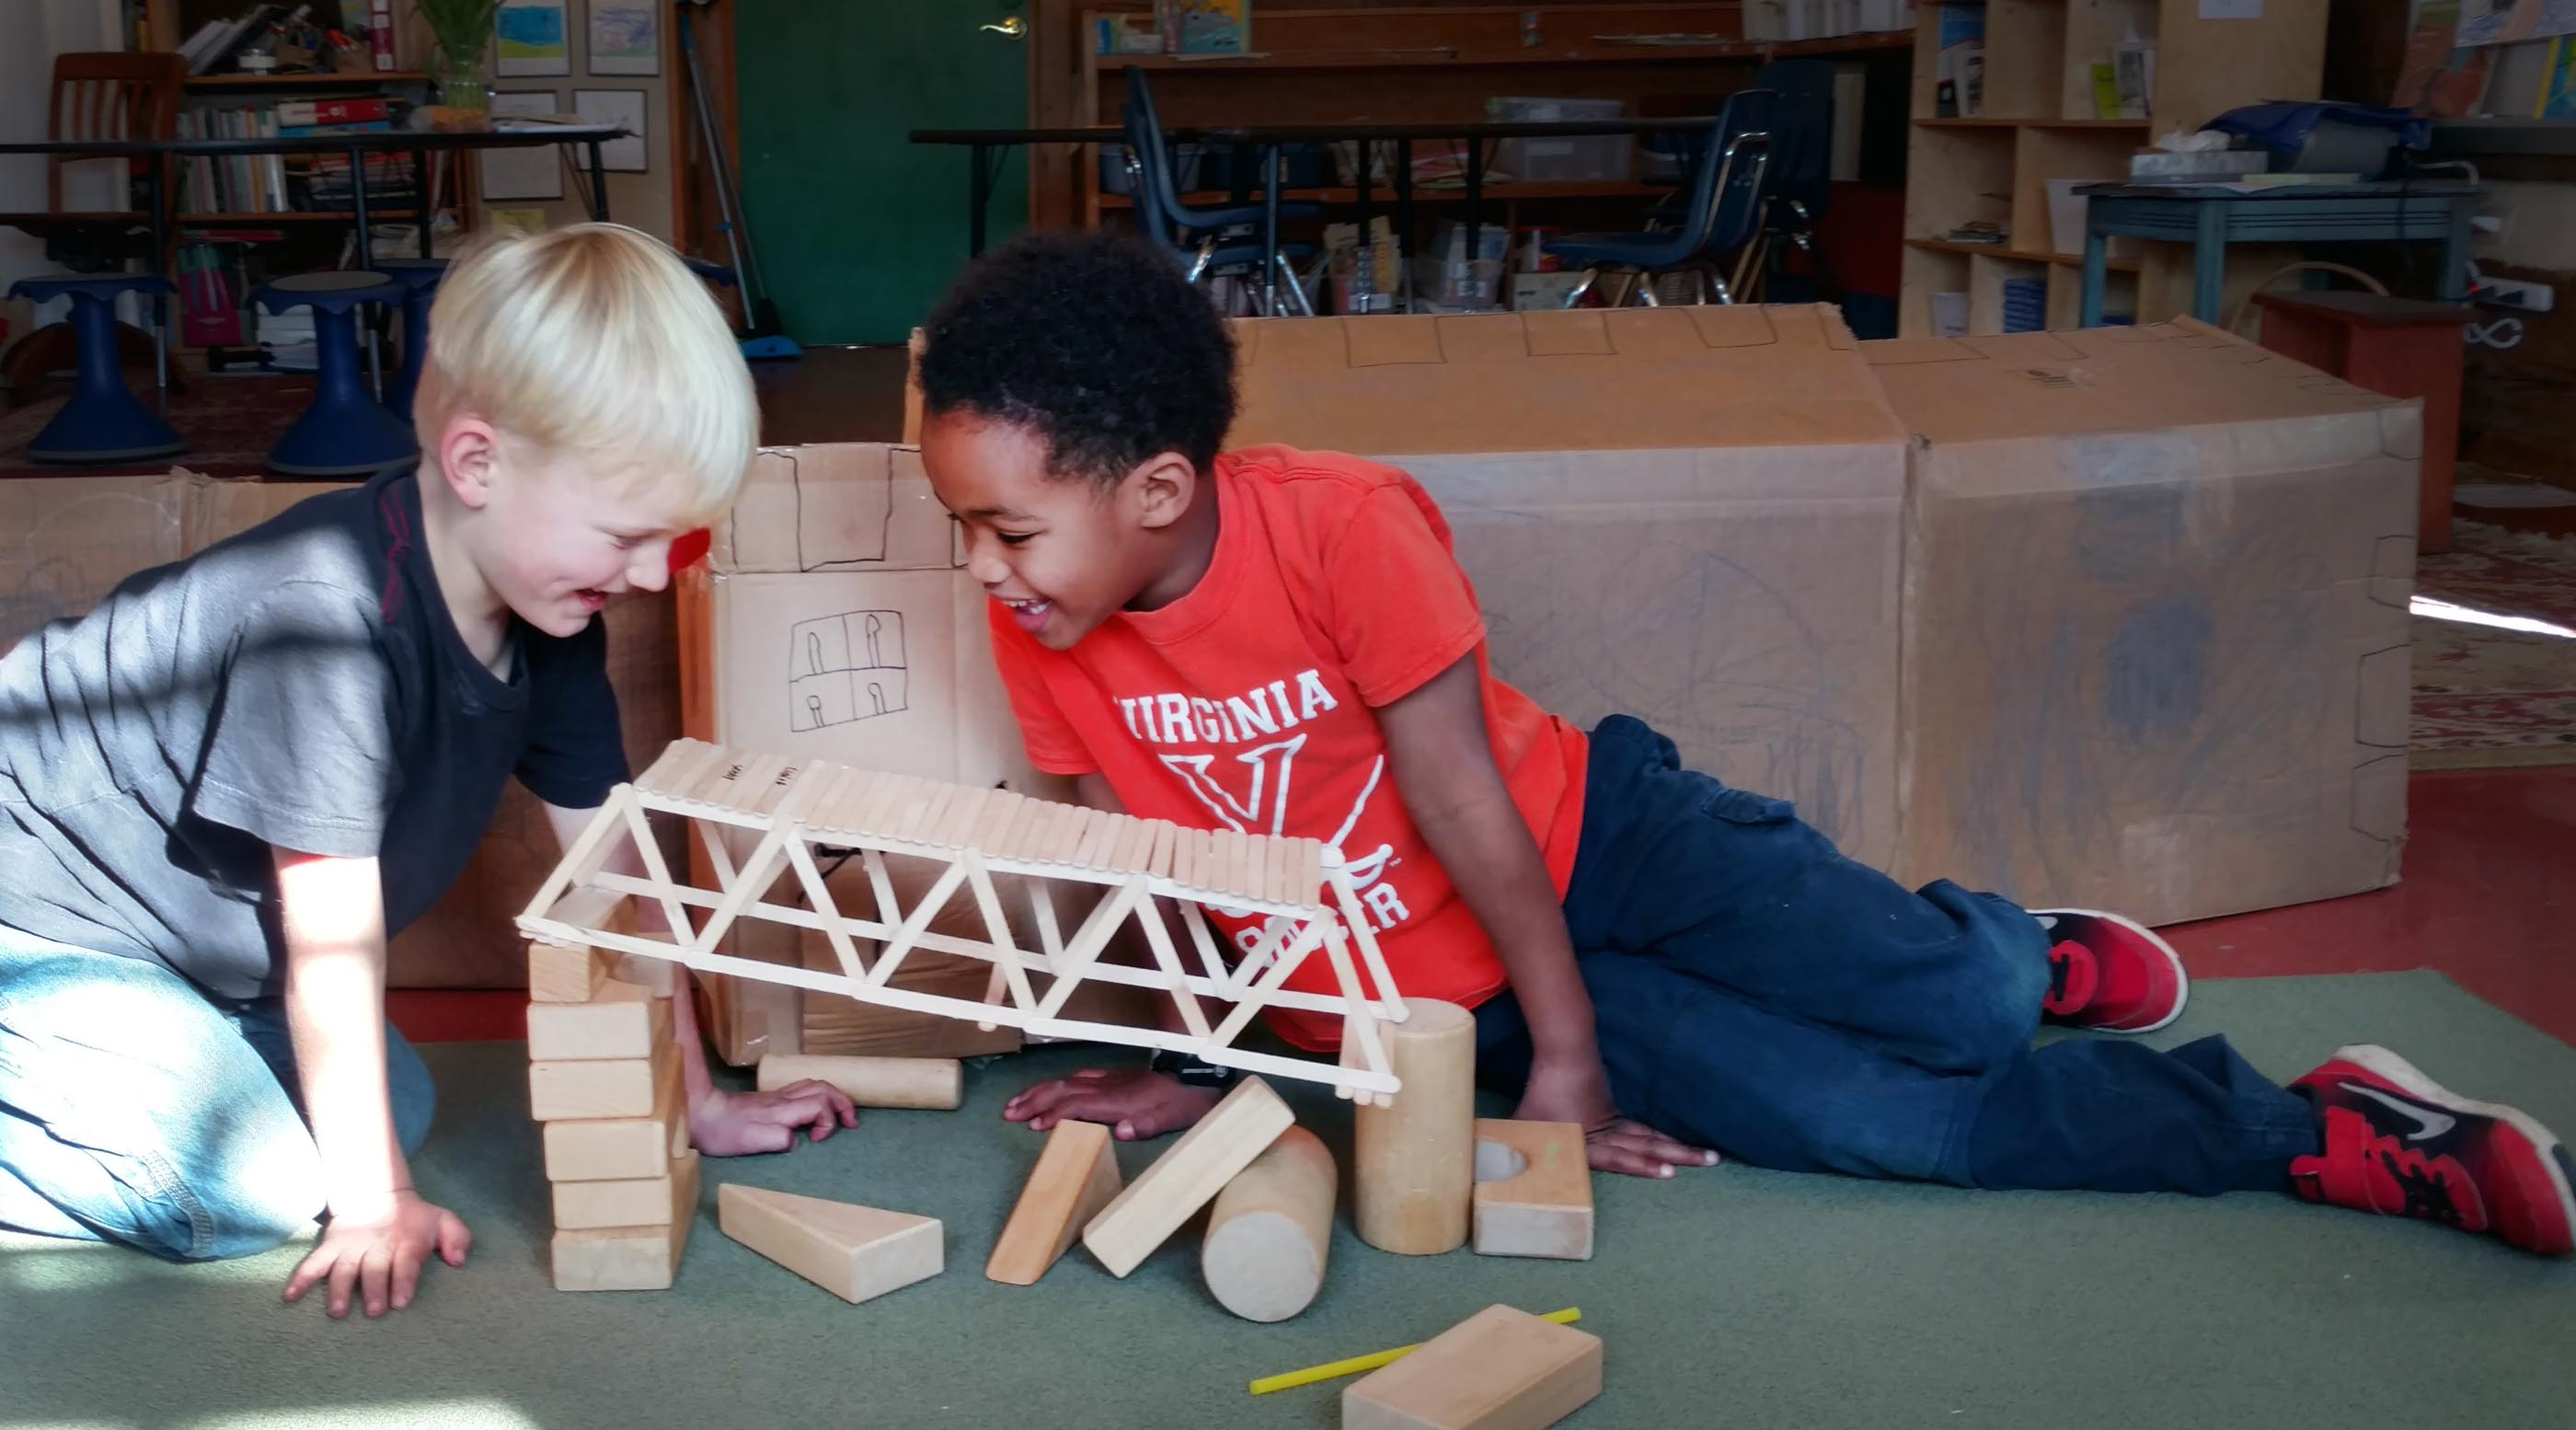 Young students smile over a construction of wooden sticks